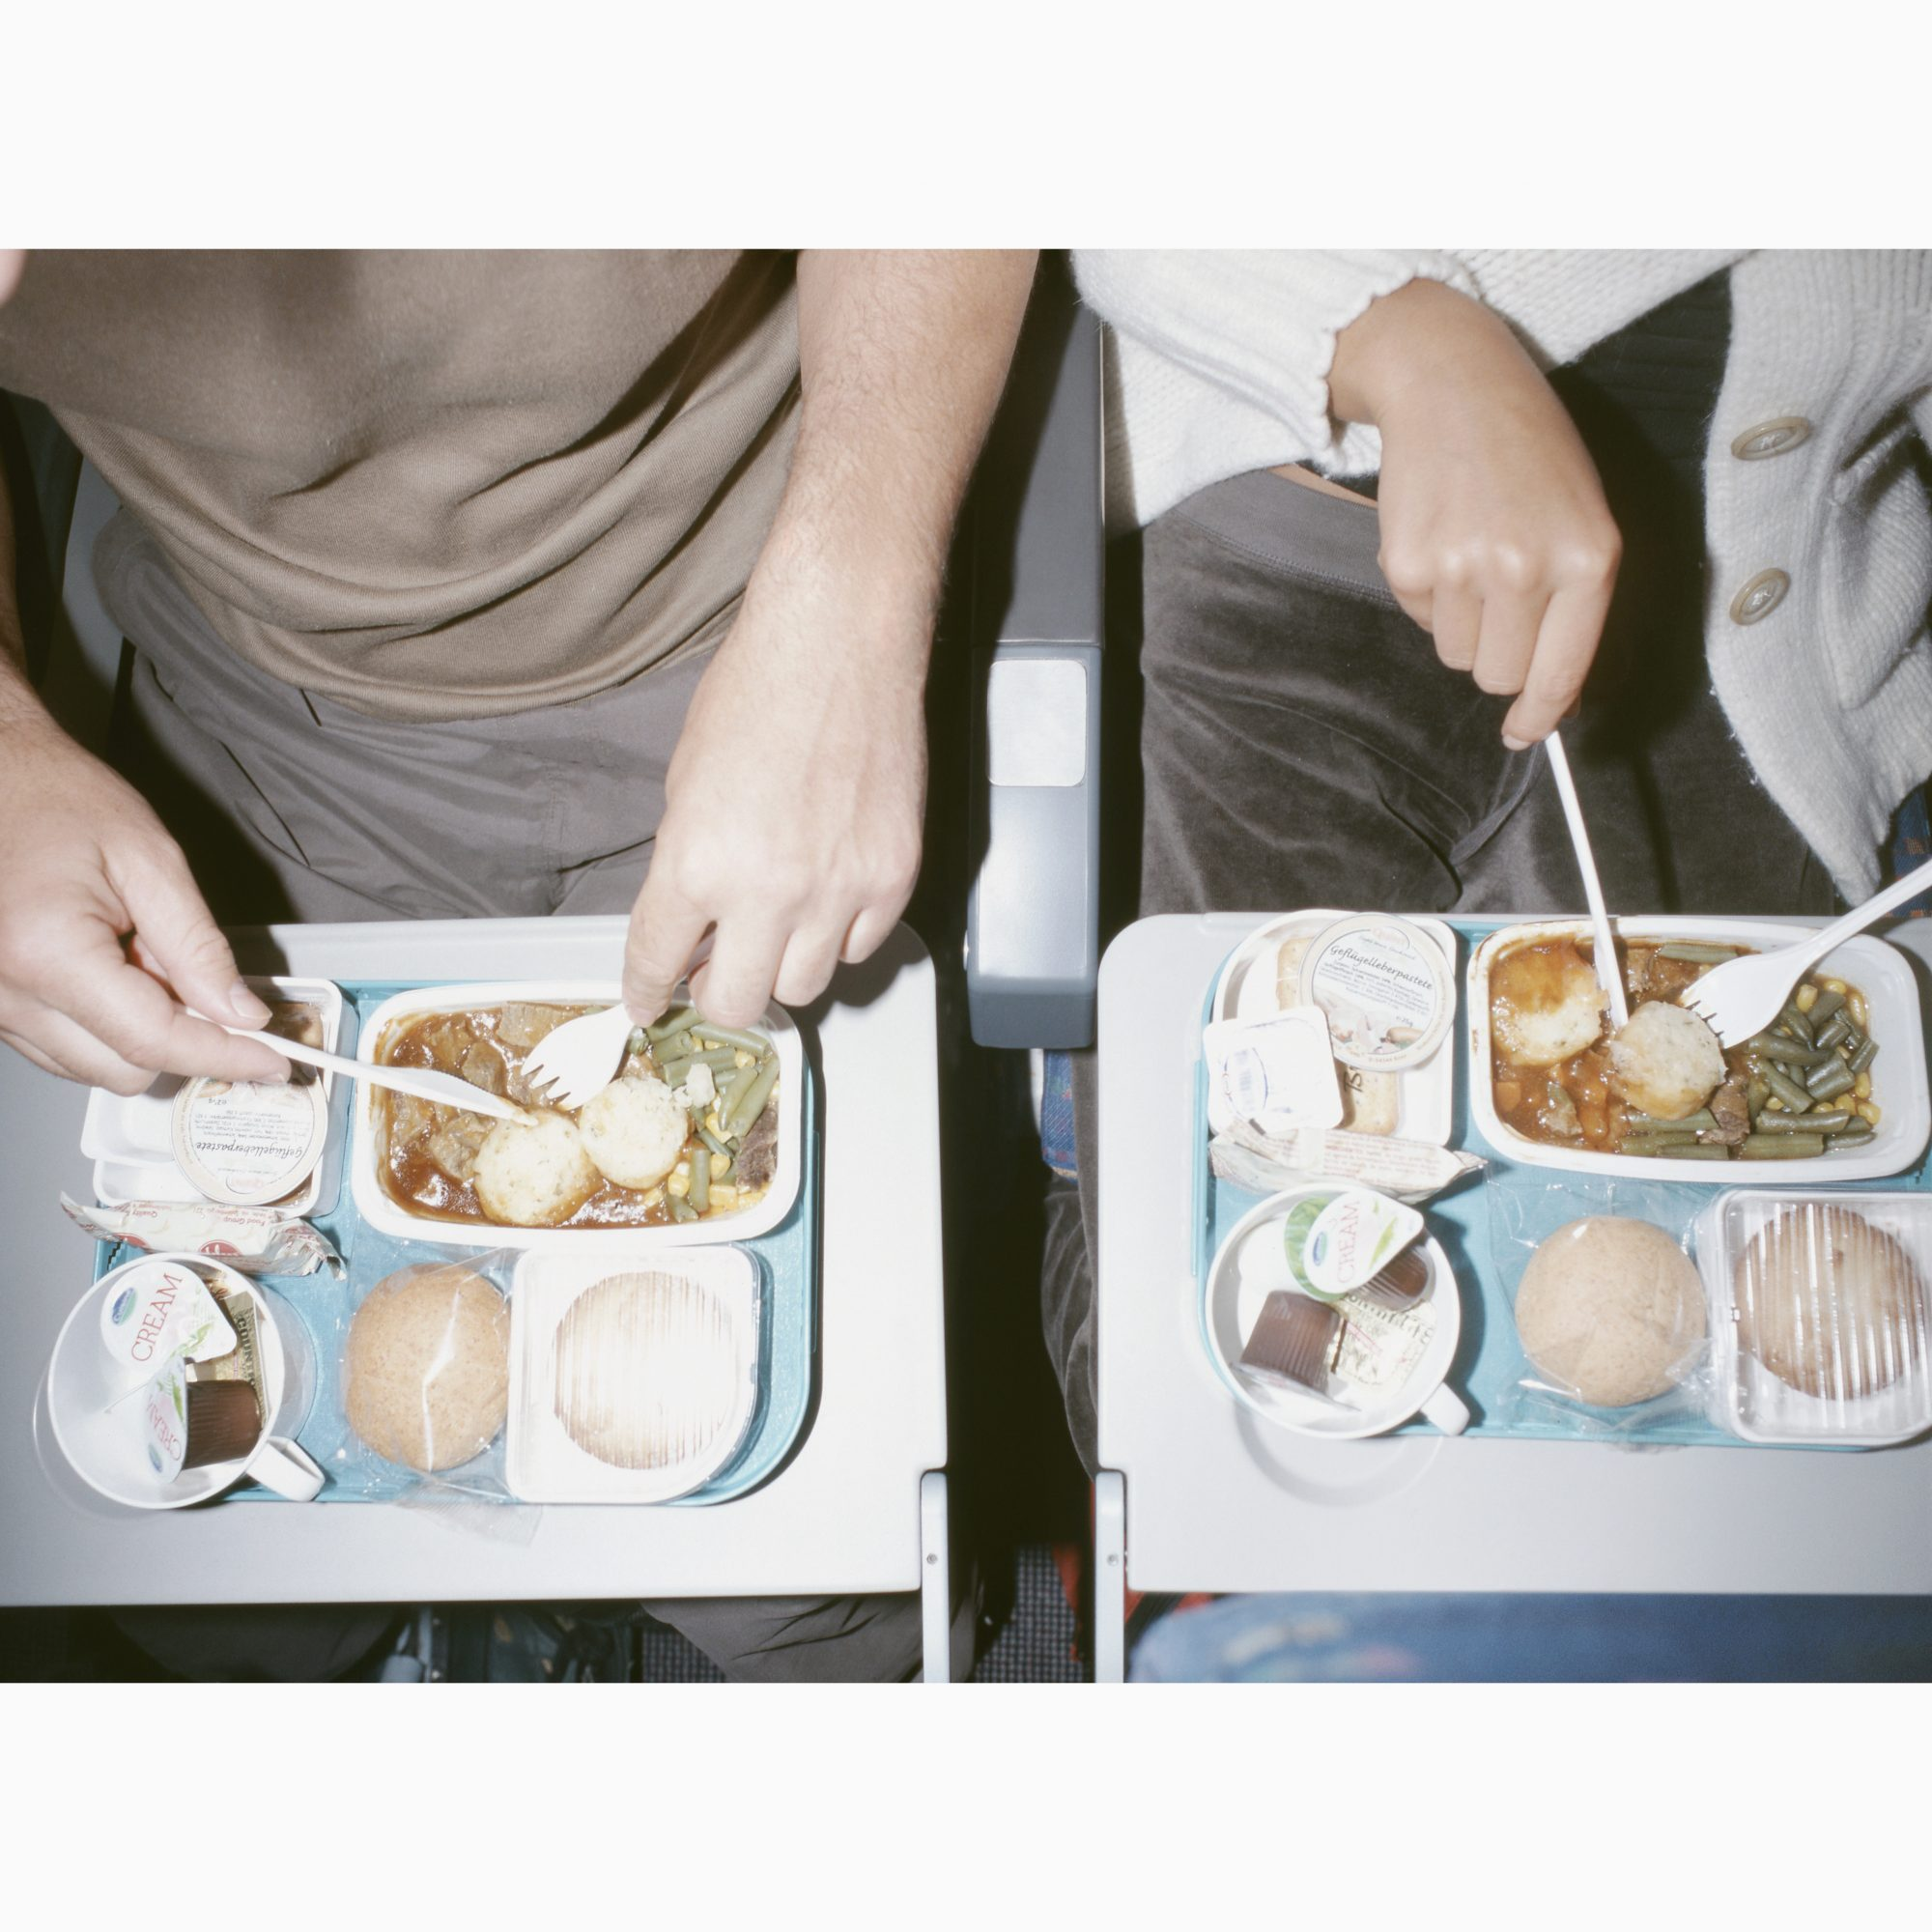 The Real Reason Why Food Tastes Different On An Airplane